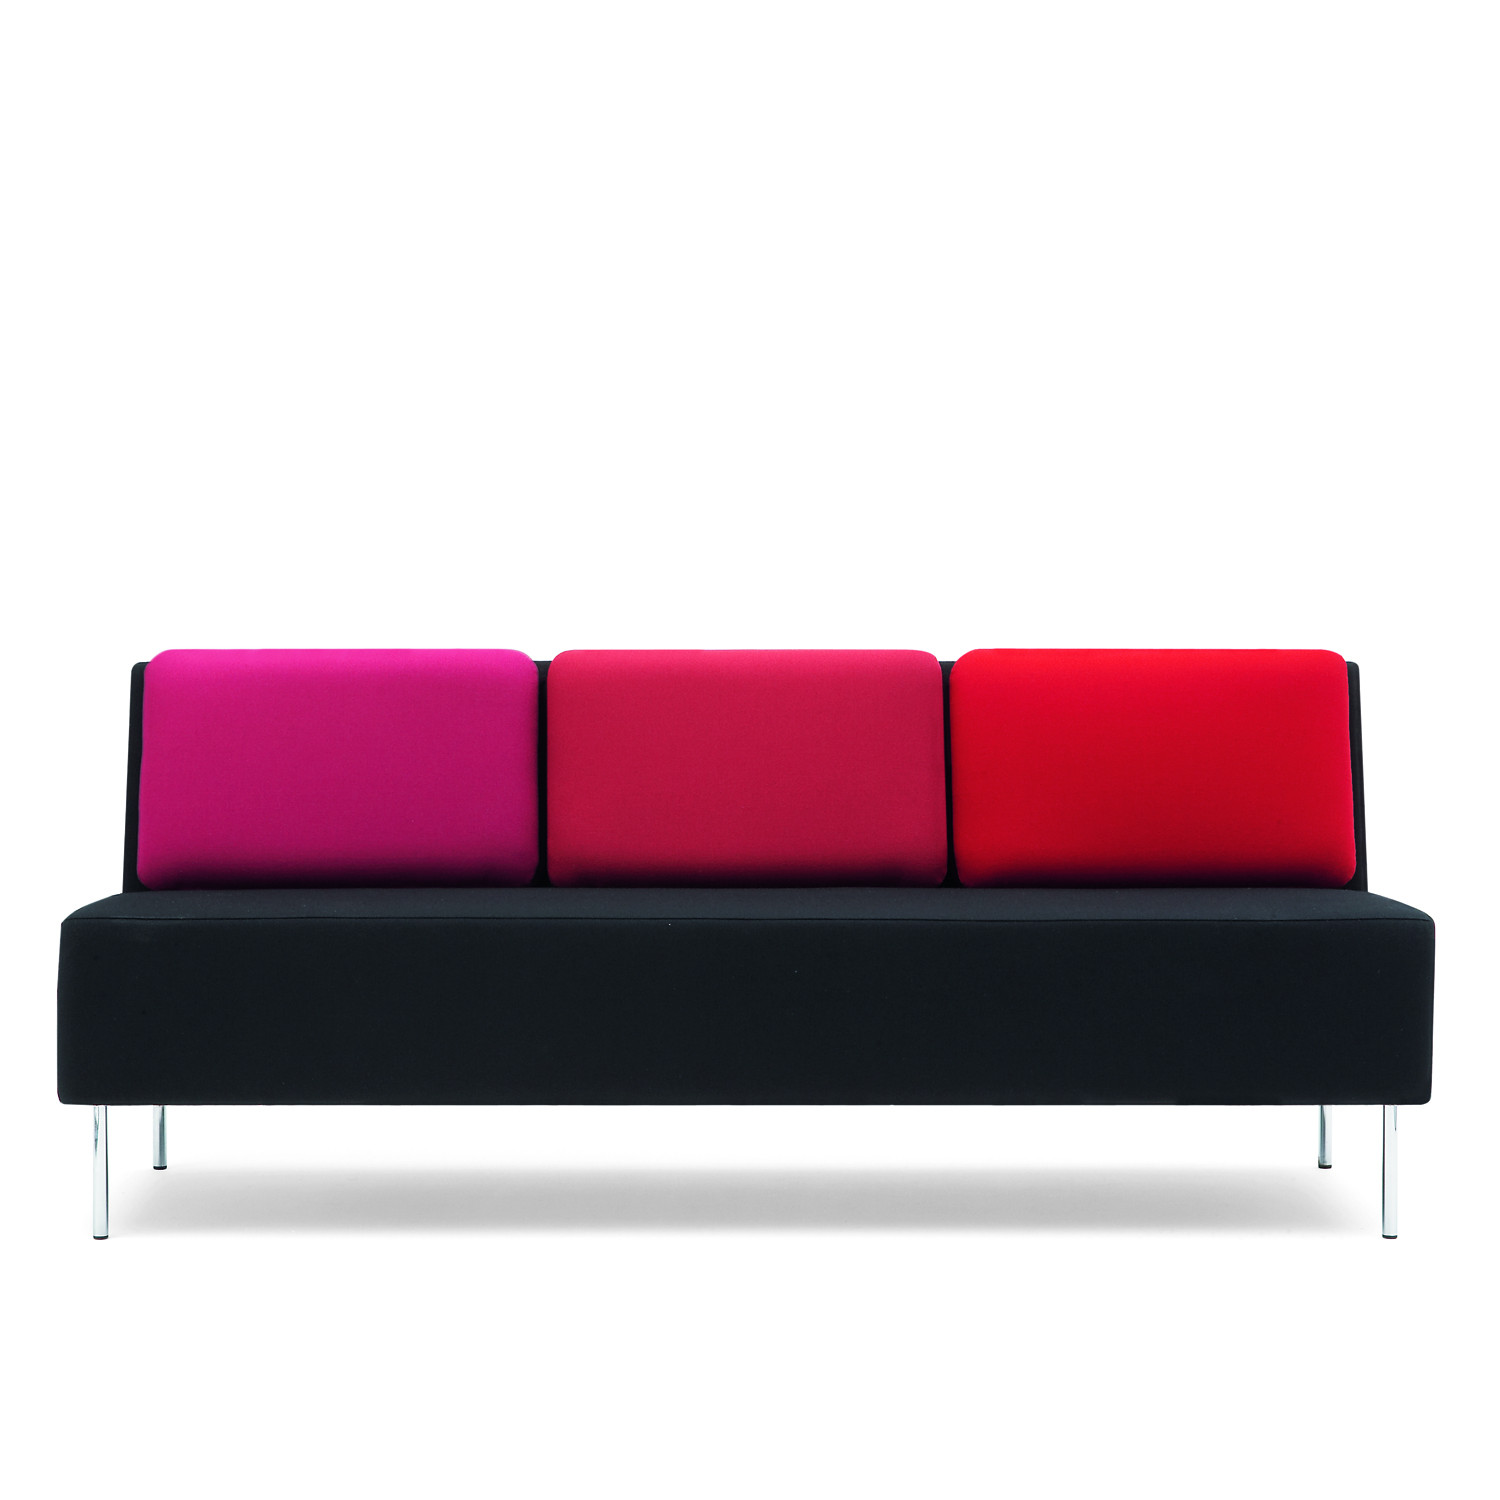 Playback Modular Sofa